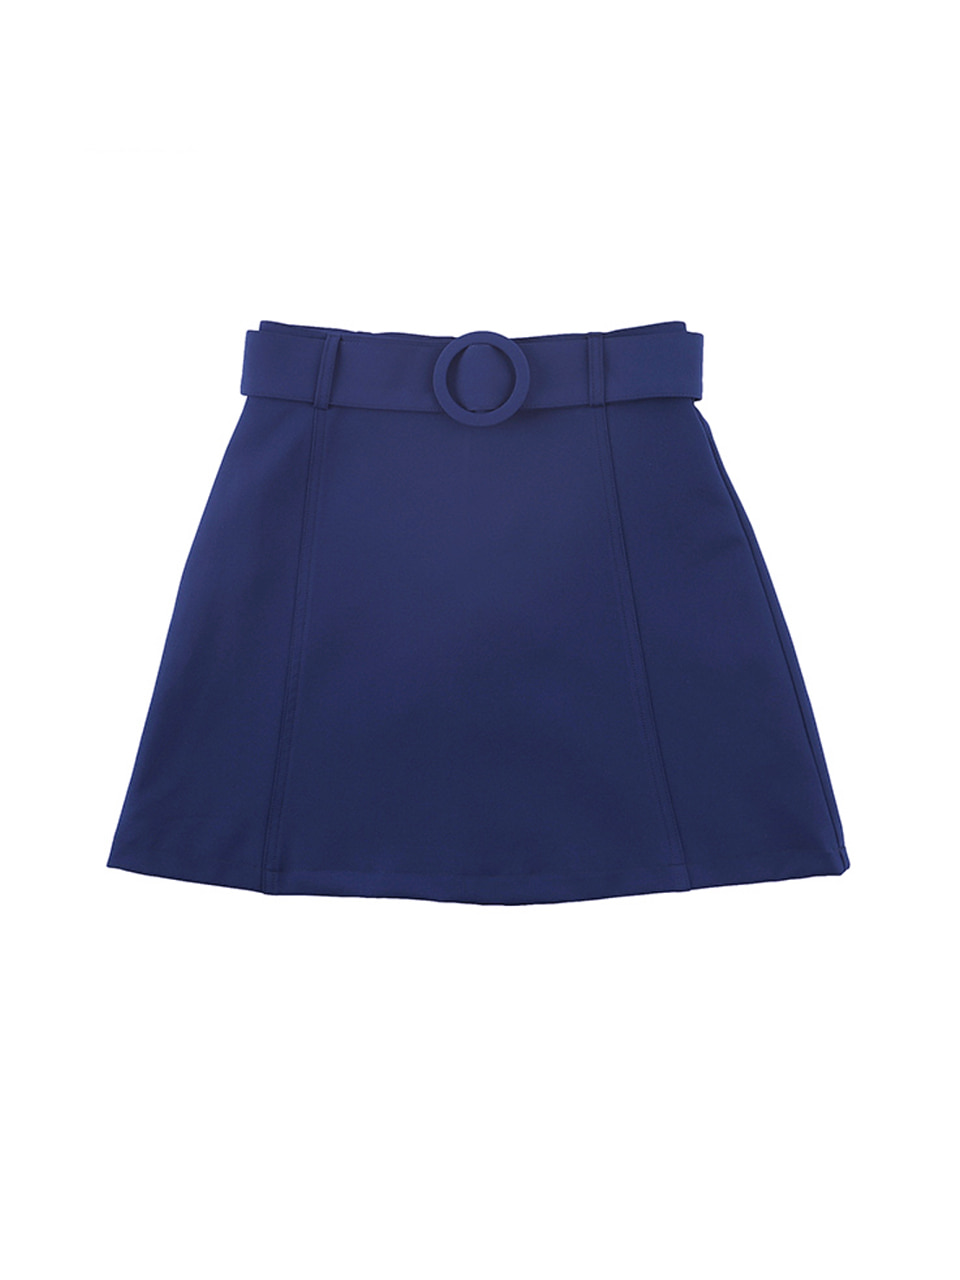 mgmg circle belt skirt_navy